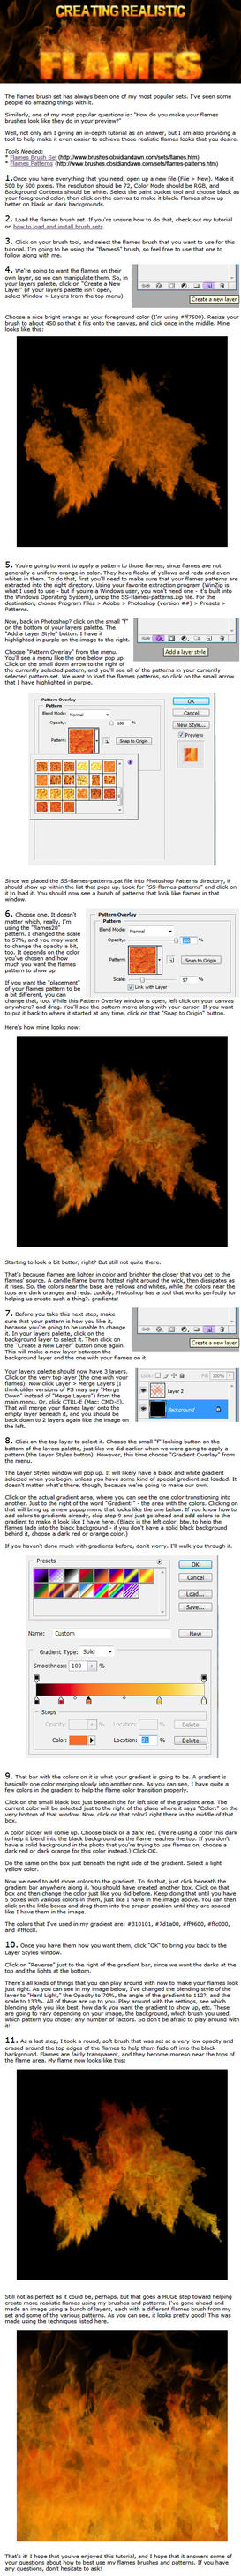 Creating Realistic Flames by redheadstock